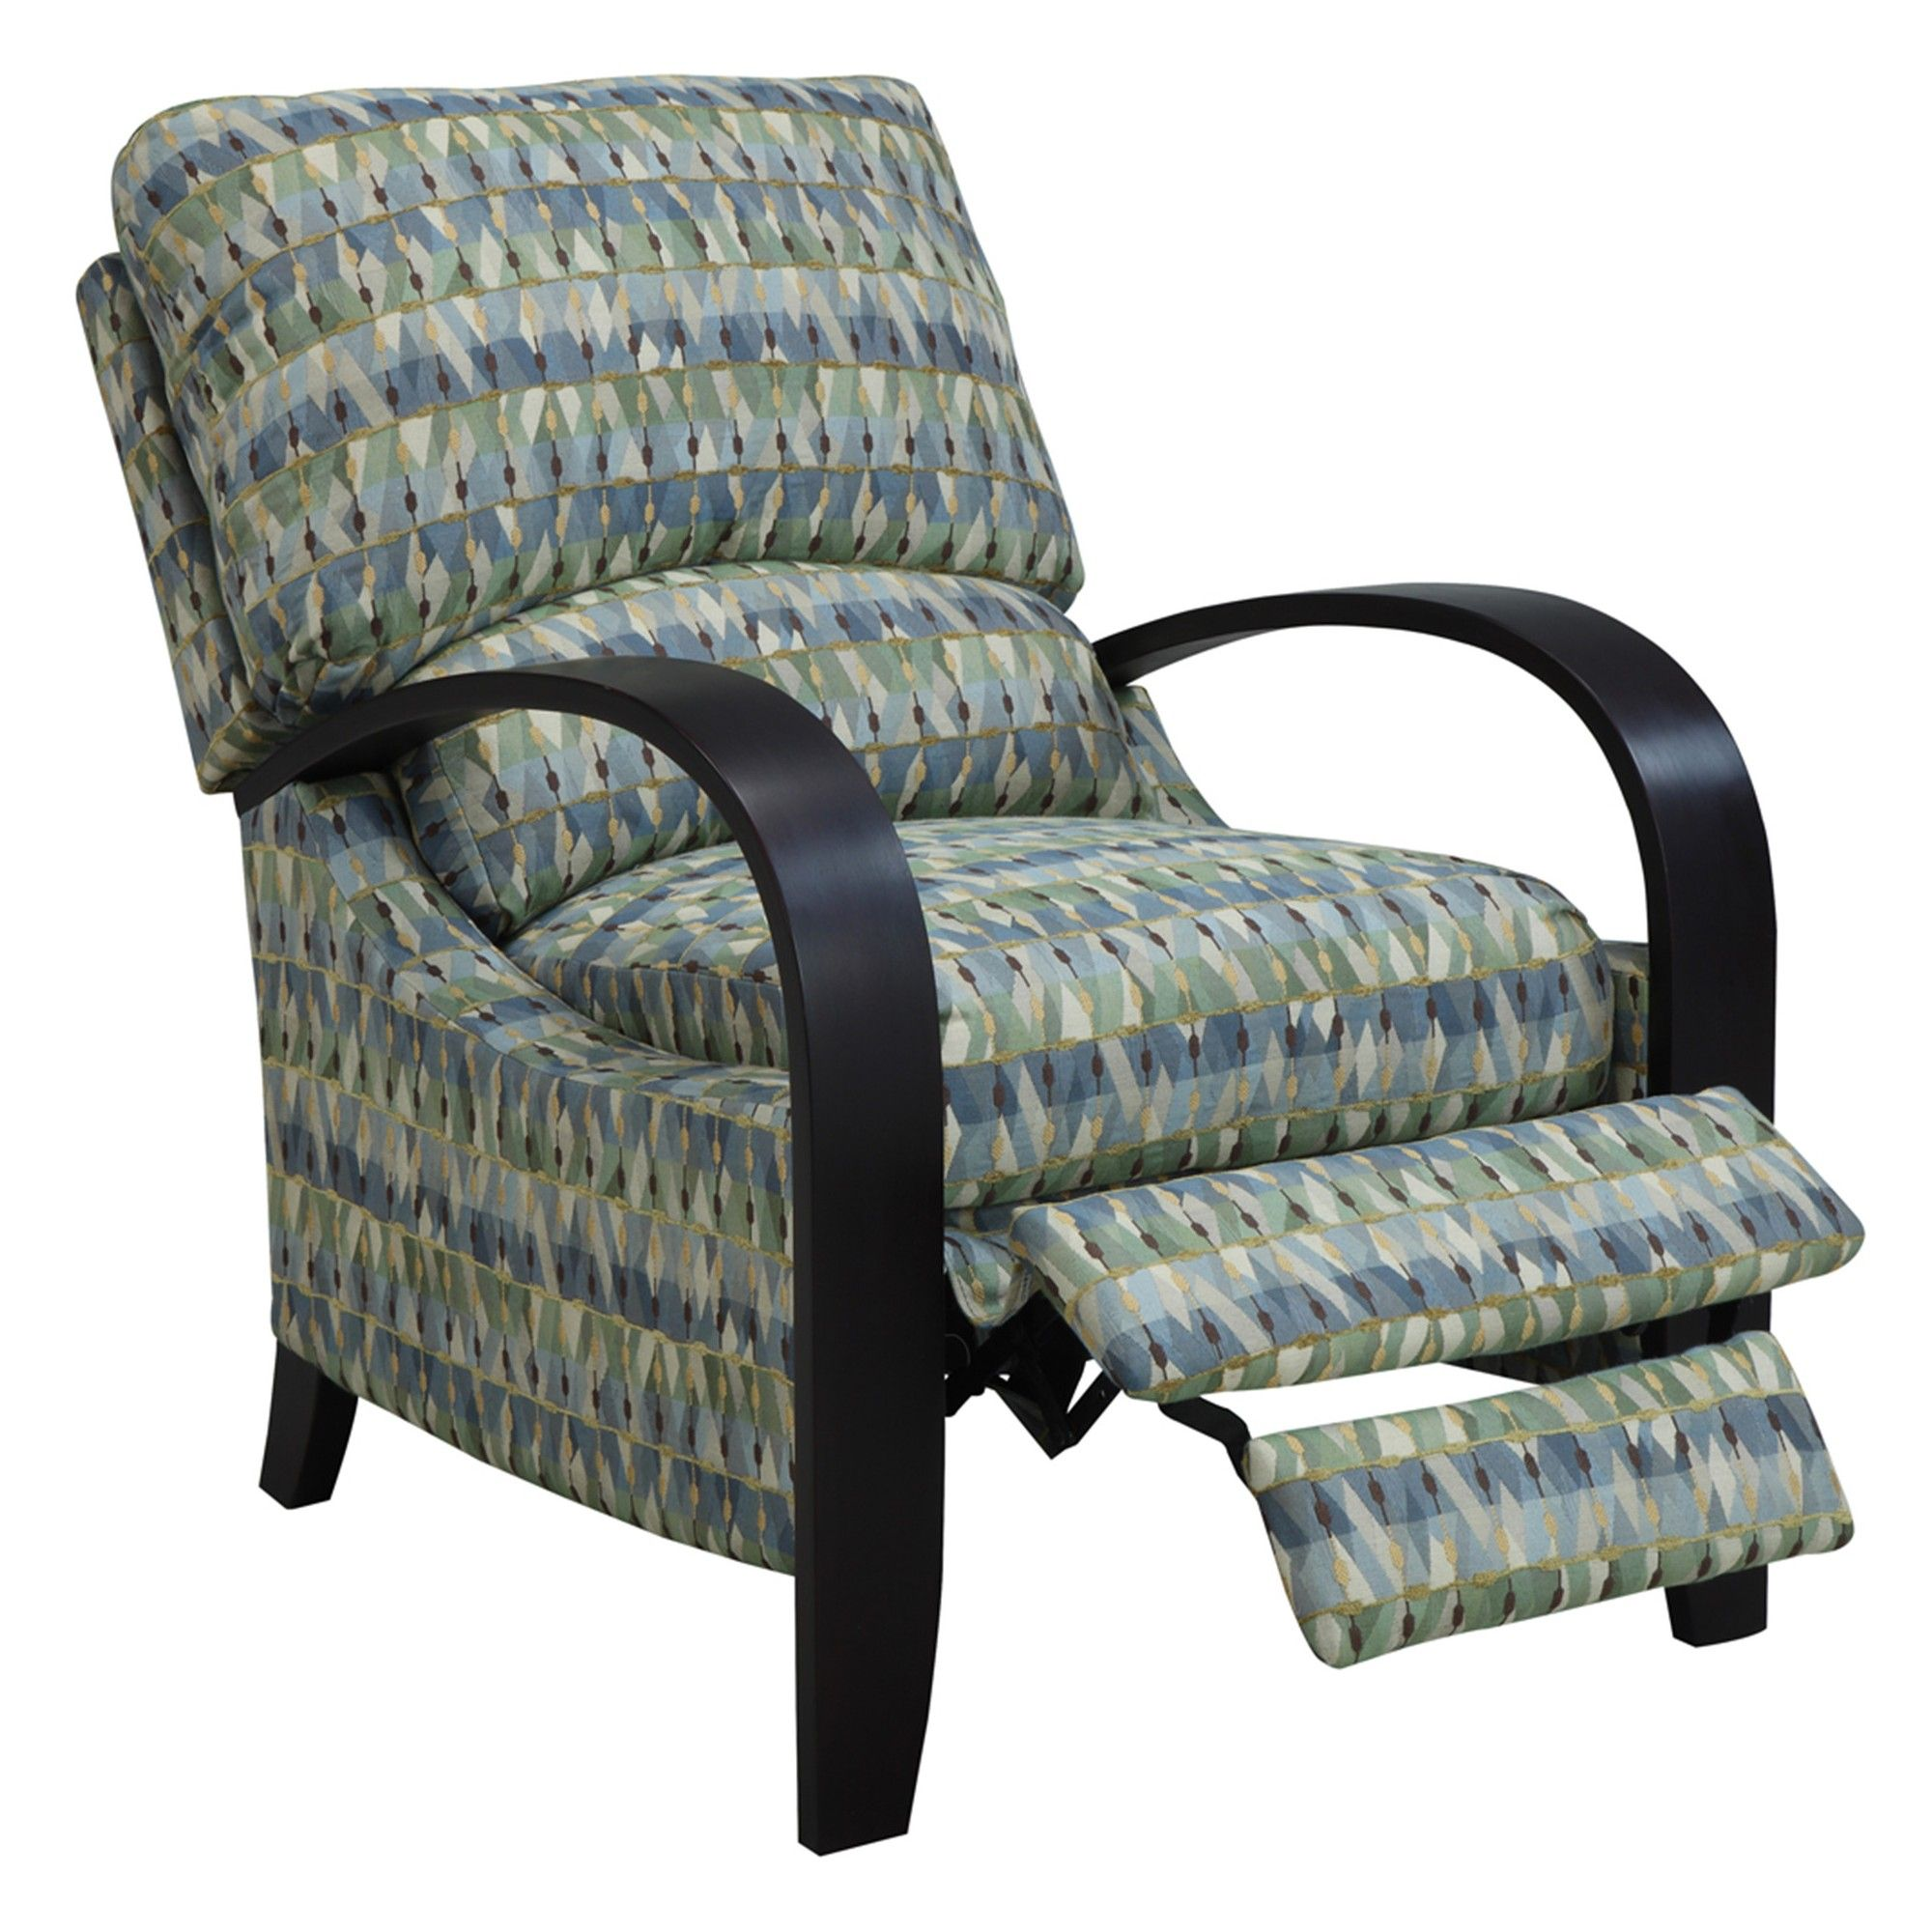 recliner armchairs black ikea gives gb en smidig comfortable leather sofas arm resilience po oak armchair layer veneer glued bent products chair ng